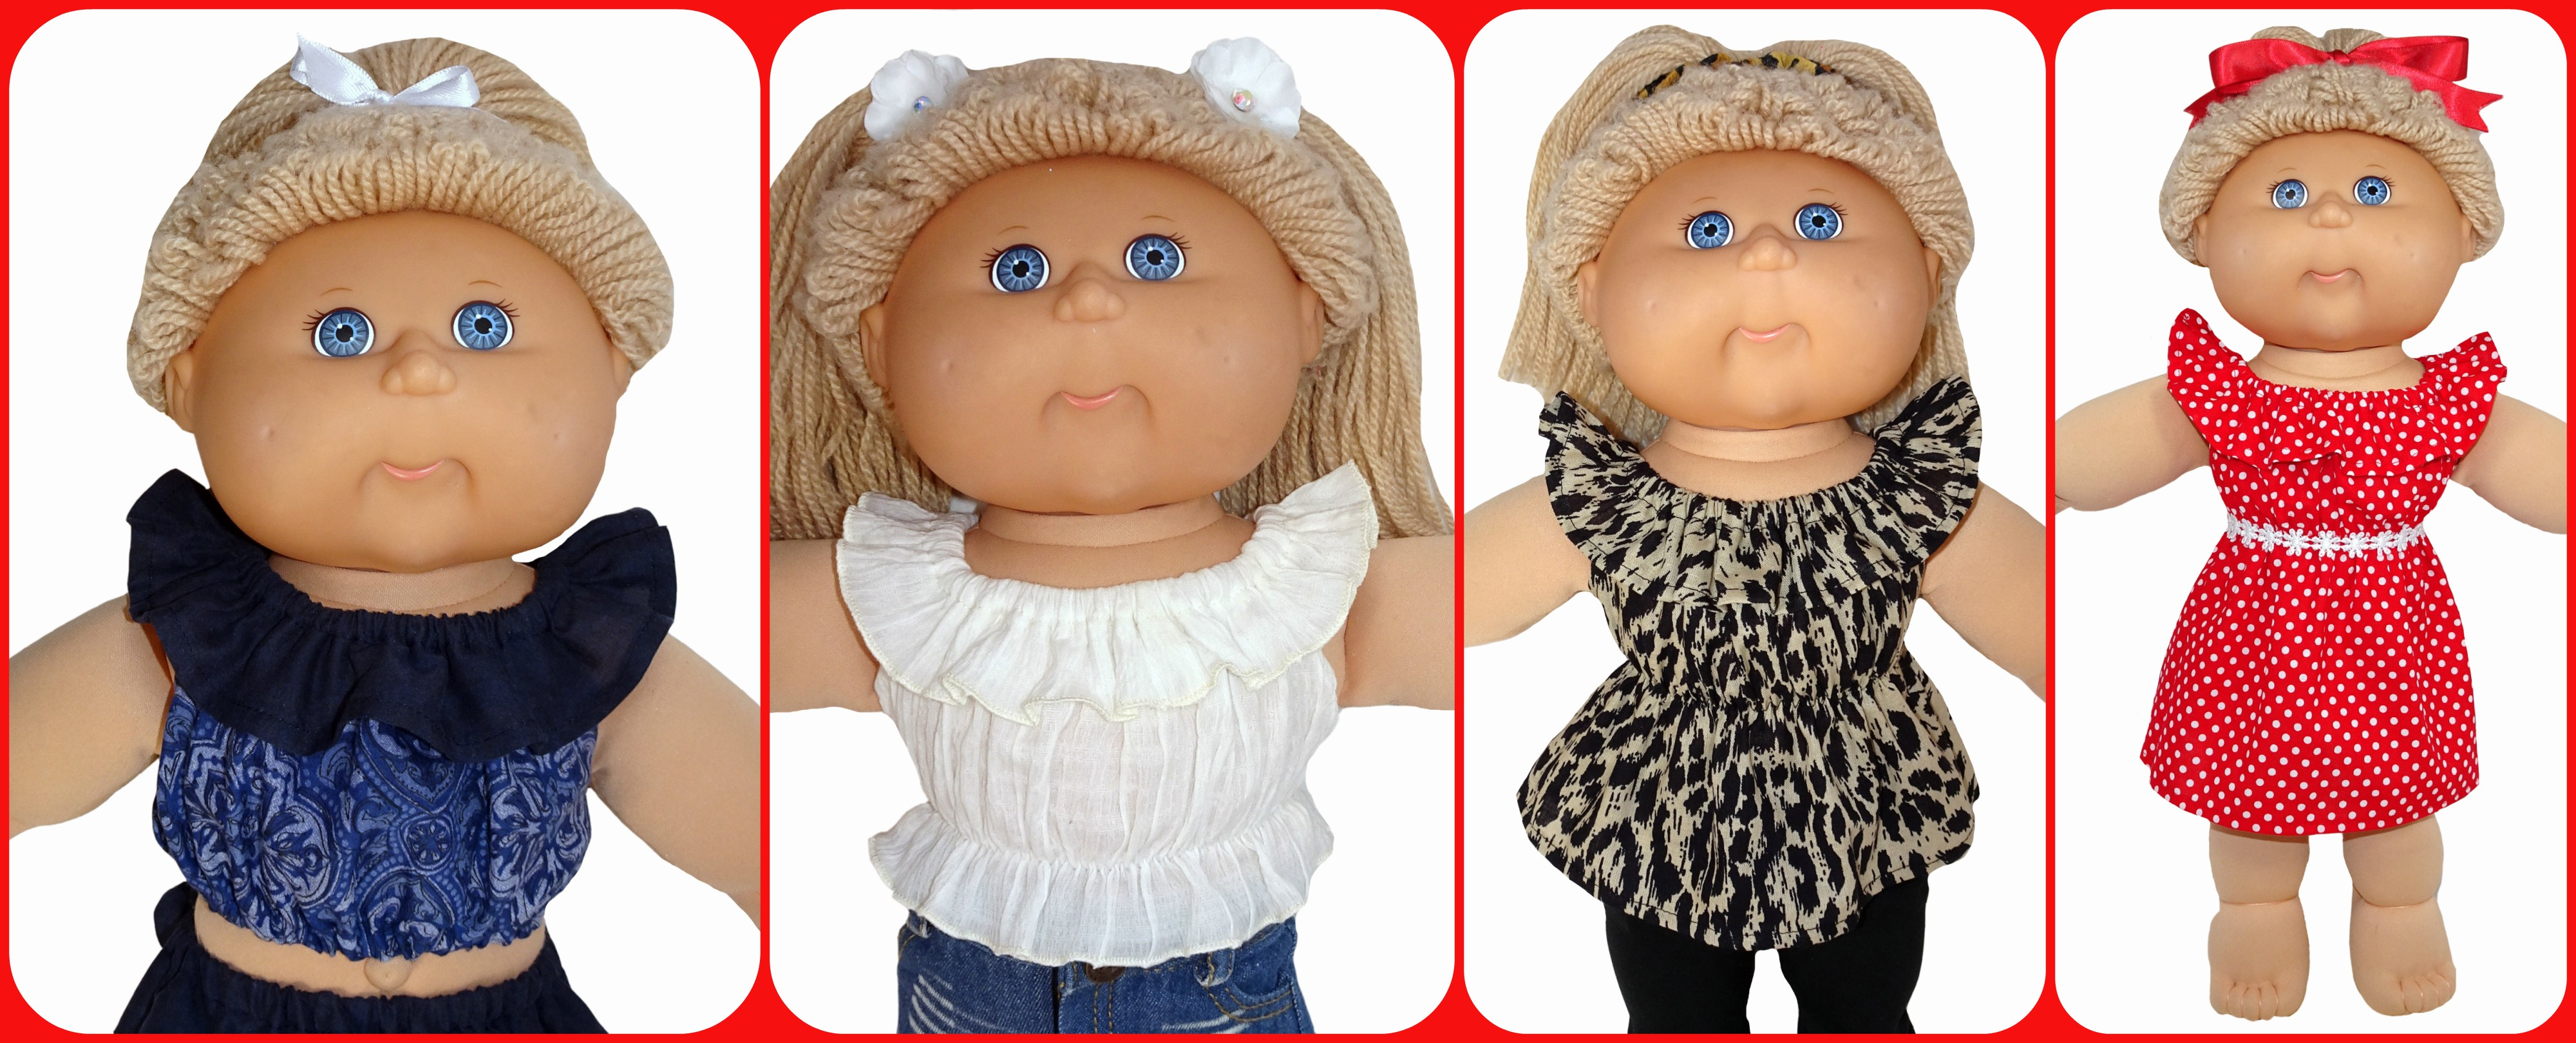 Cabbage Patch Kids Fun and Frilly Top with bonus dress option